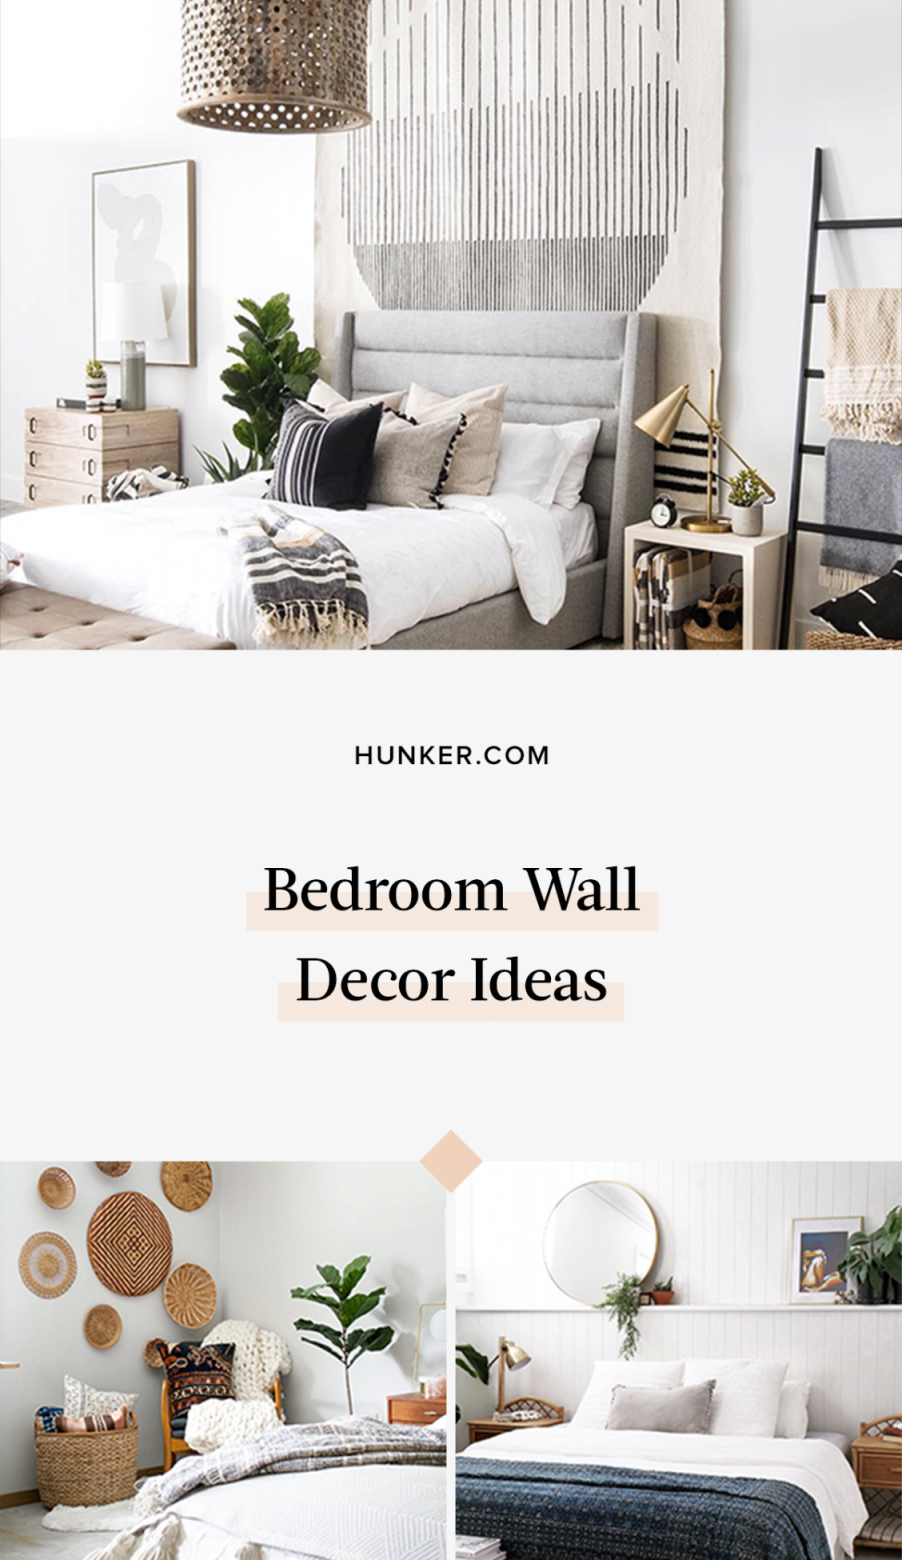 8 Clever Bedroom Wall Decor Ideas To Make The Most Of That inside Unique Wall Decor Bedroom Ideas